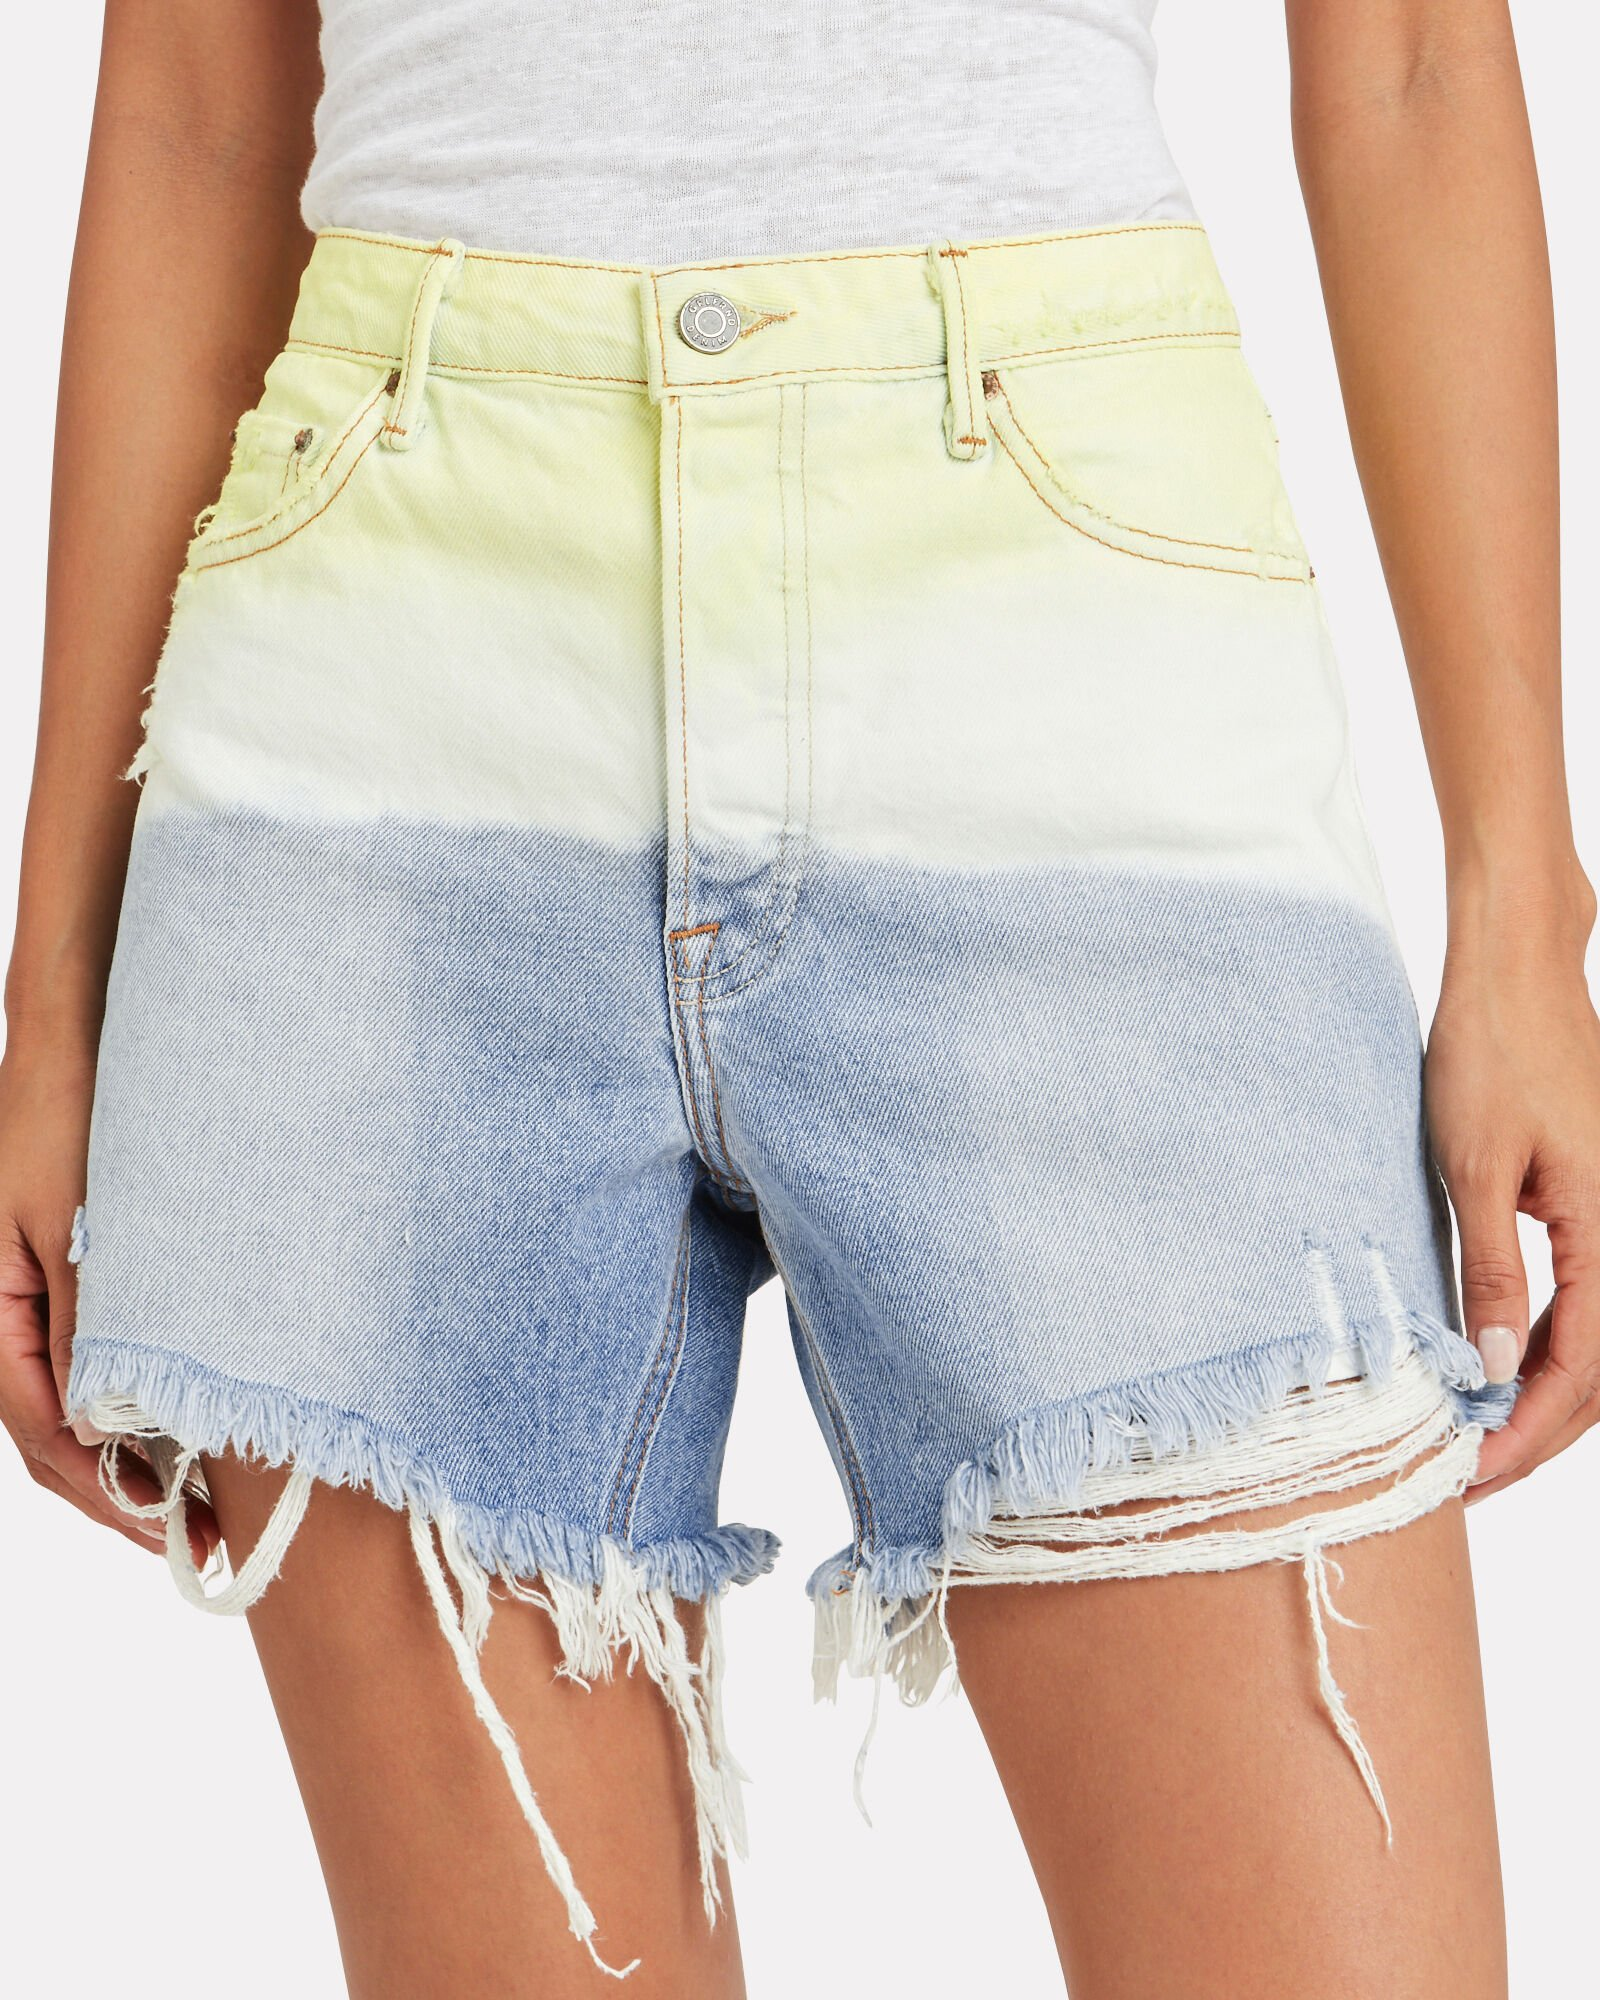 Jourdan Cut-Off Denim Shorts, YELLOW TIE-DYE, hi-res